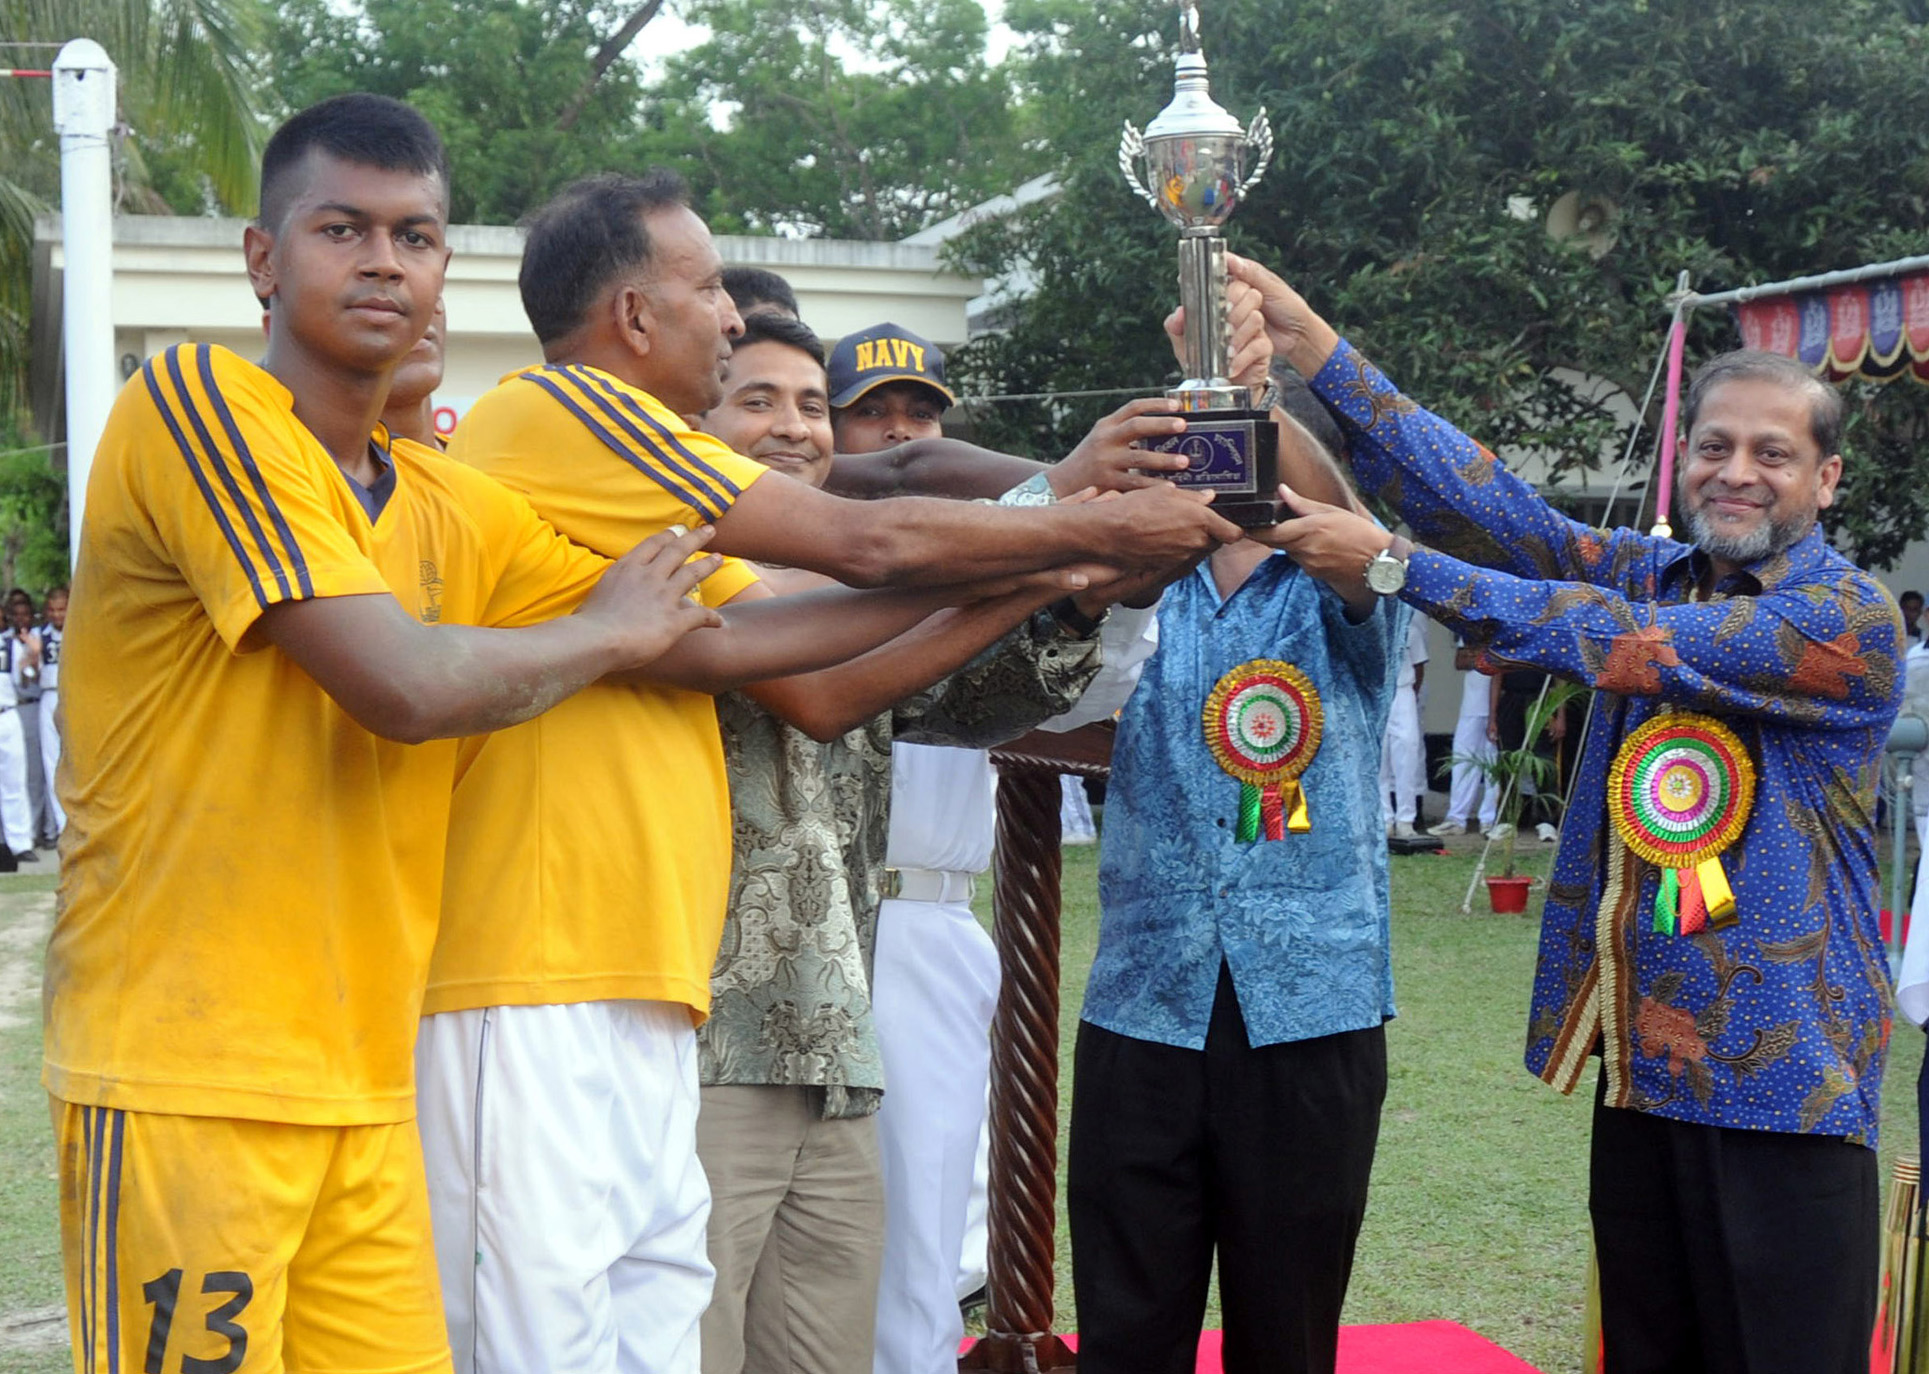 Area Commander of Khulna Naval Region Commodore Shamsul Alam distributes the prize to the BNS Titumir Base, champions of the Inter-Base Volleyball Competition at the Titumir Sports Complex in Bangladesh Naval Ship, Khulna on Wednesday.